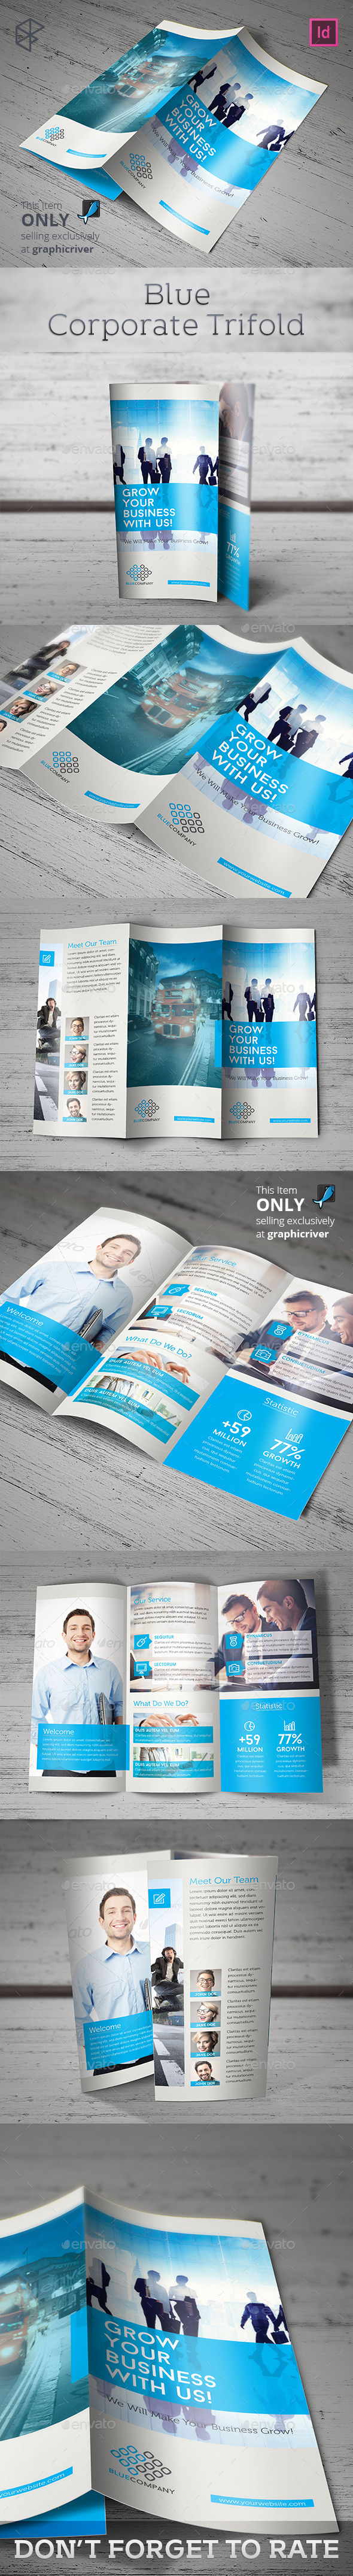 Blue Corporate Trifold - Corporate Brochures